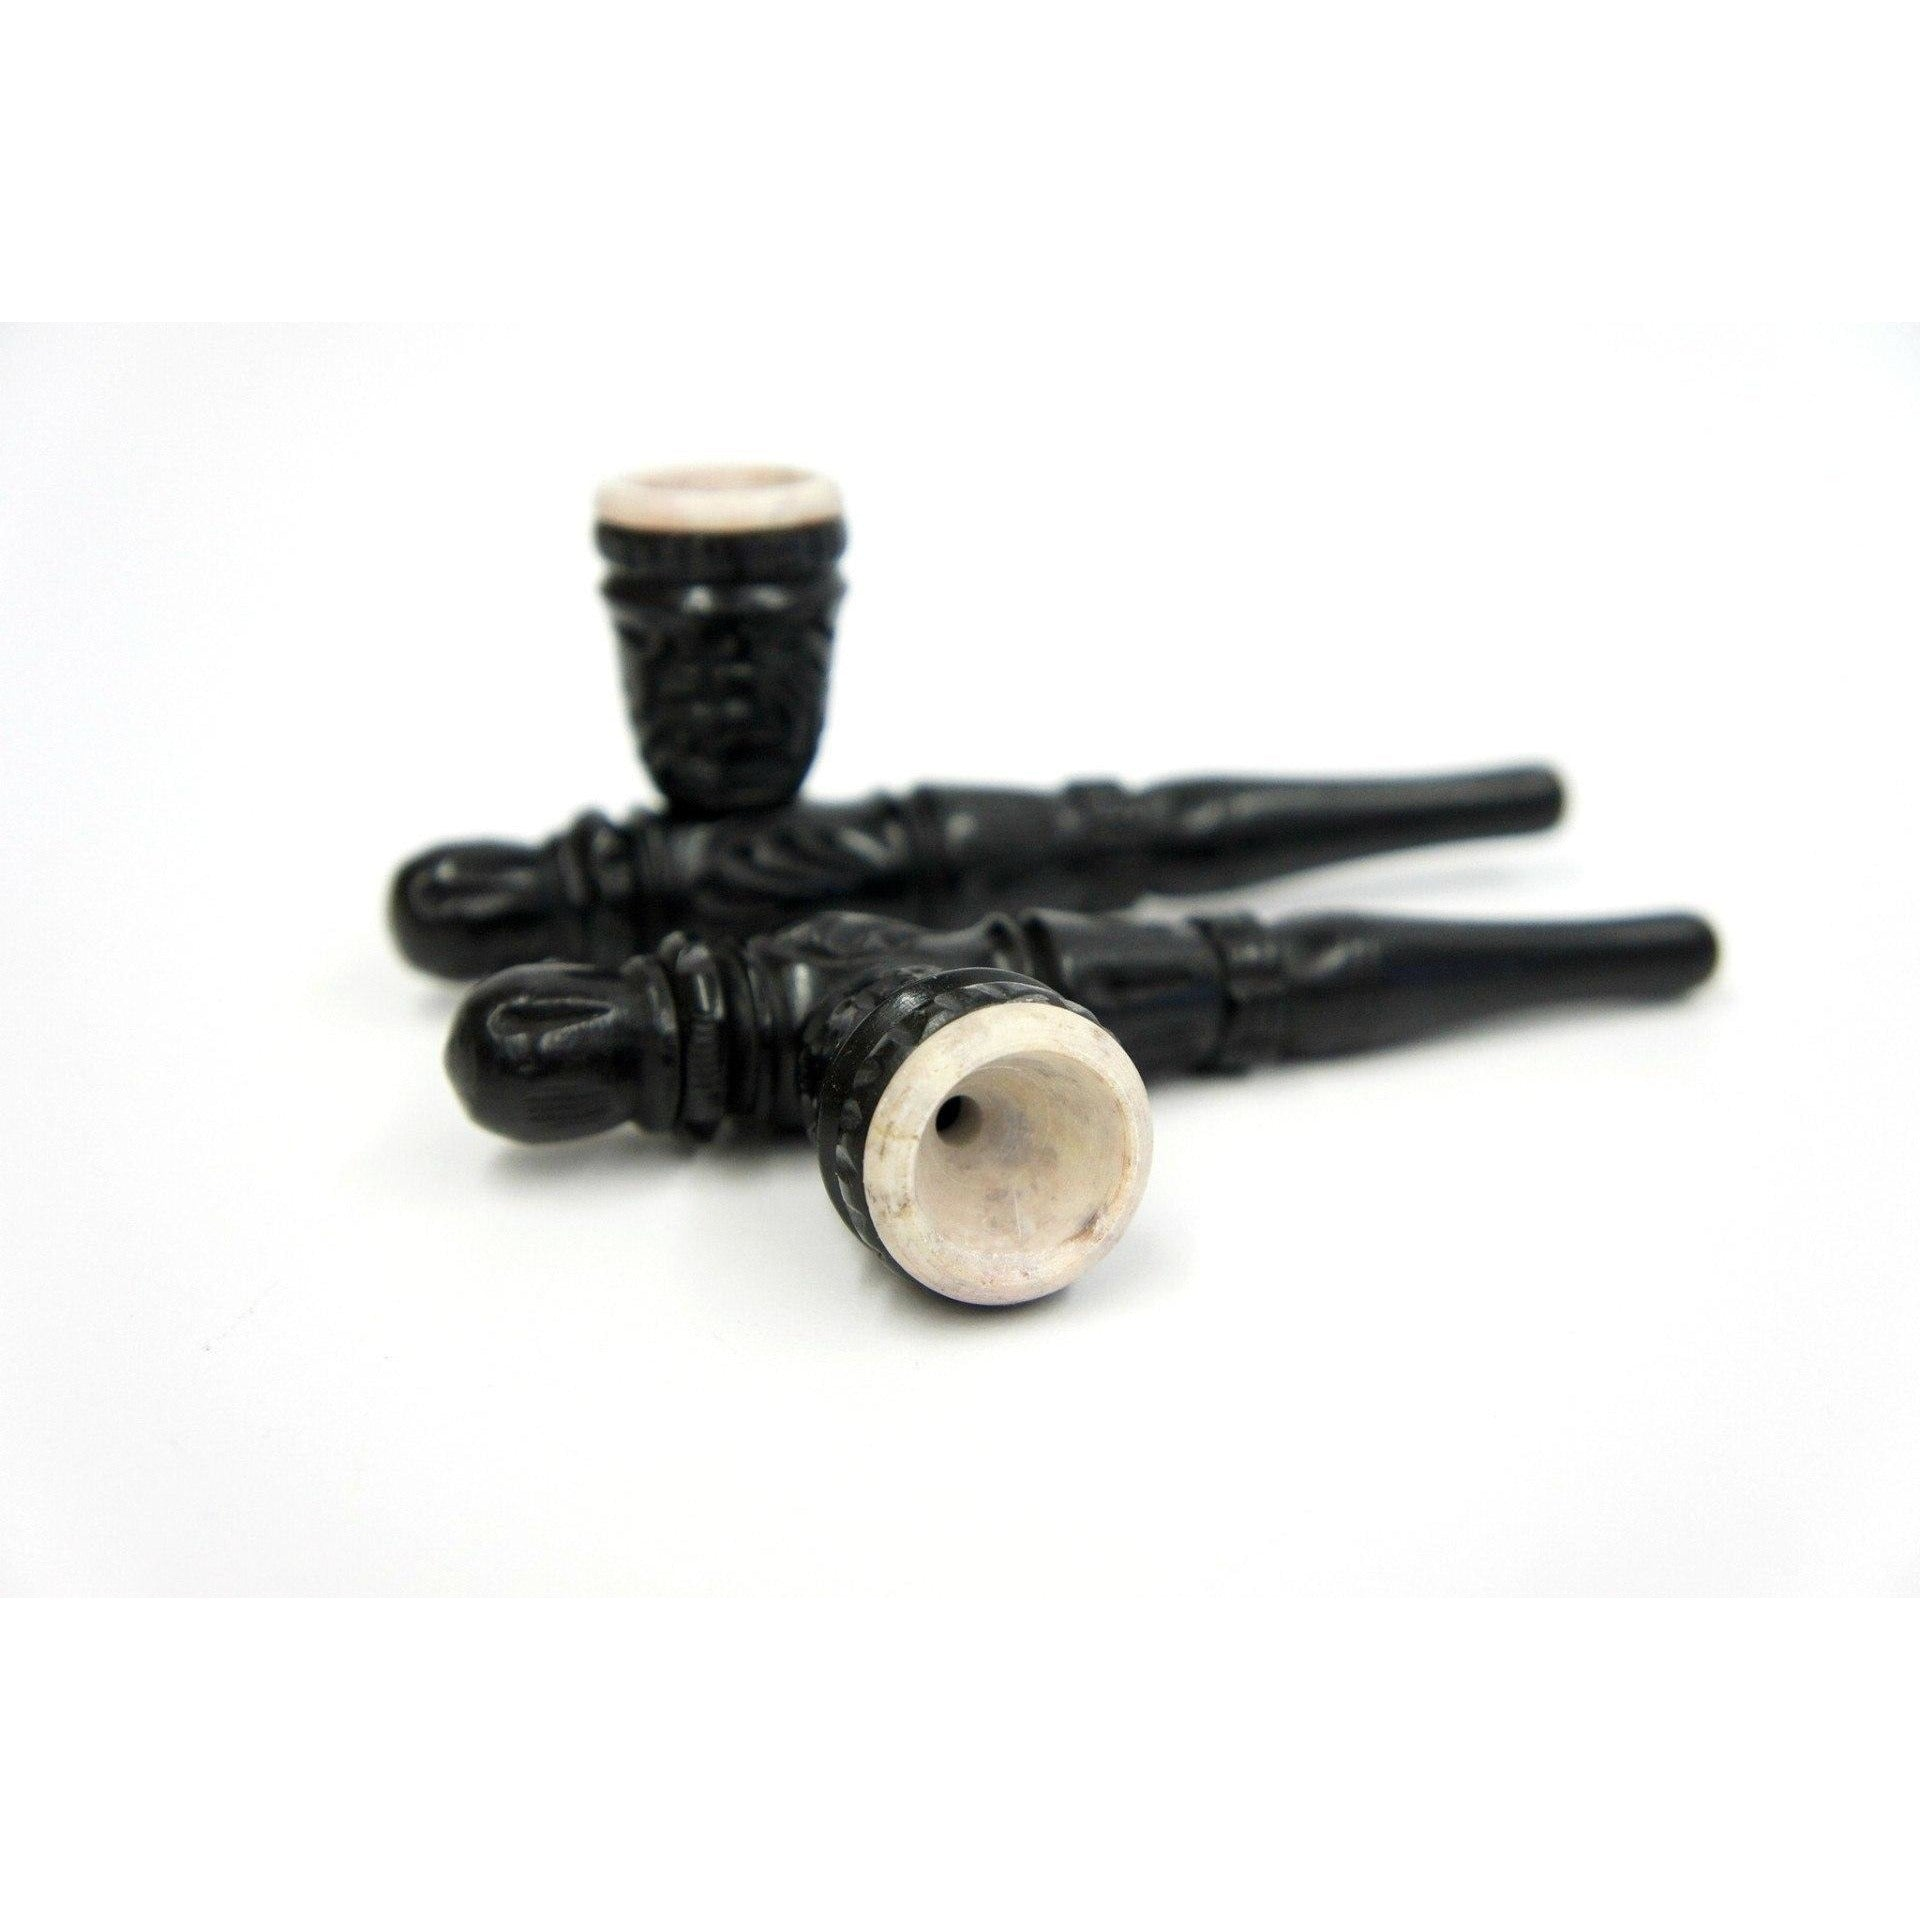 "4"" Tribe Carved Ebony Handmade Smoking Tobacco Pipe with Stone Bowl - WoodStonePipes.com   - 1"